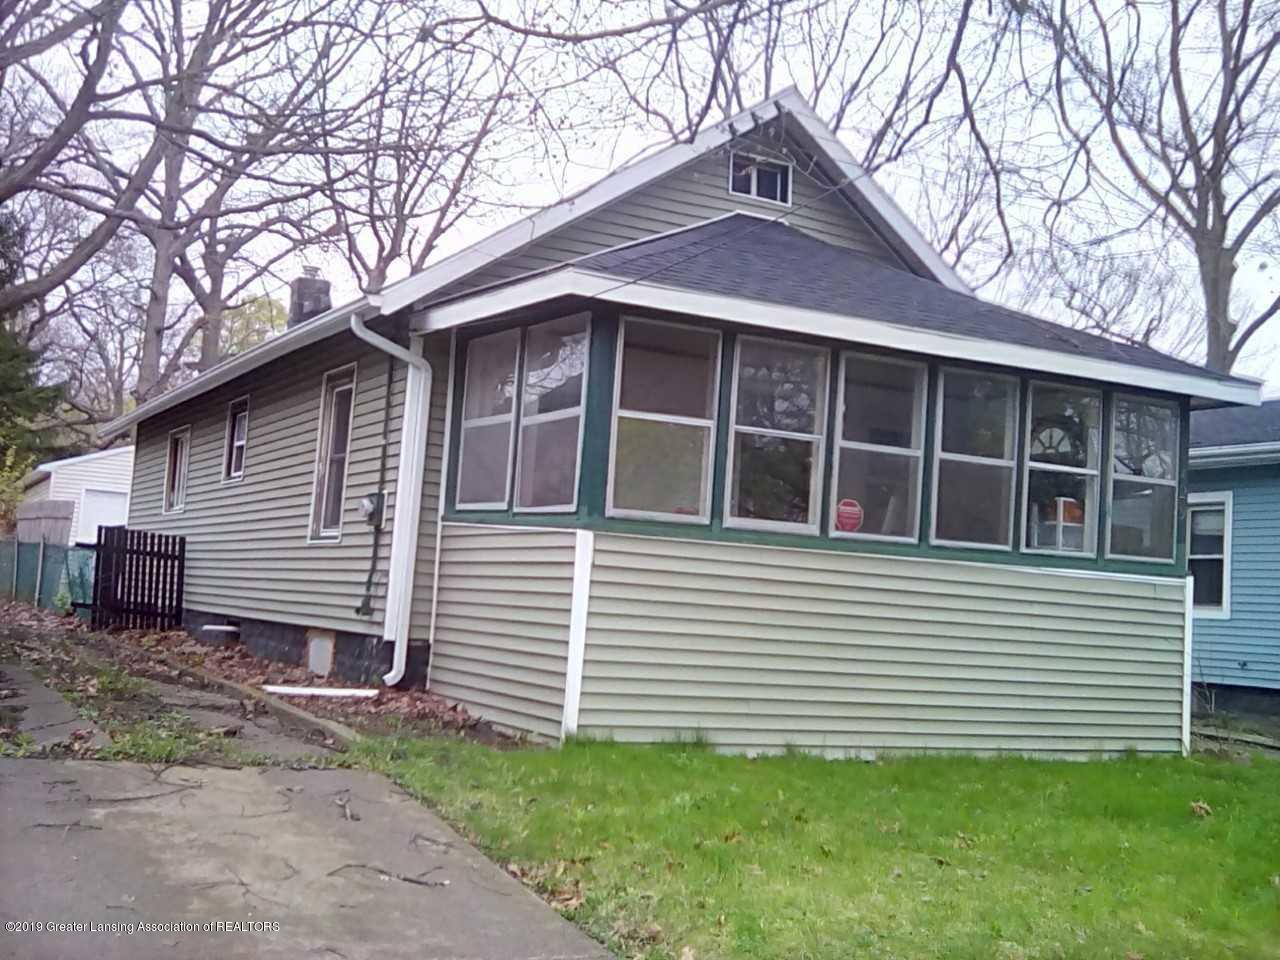 1129 S Holmes St - 1129 S Holmes Front - 1